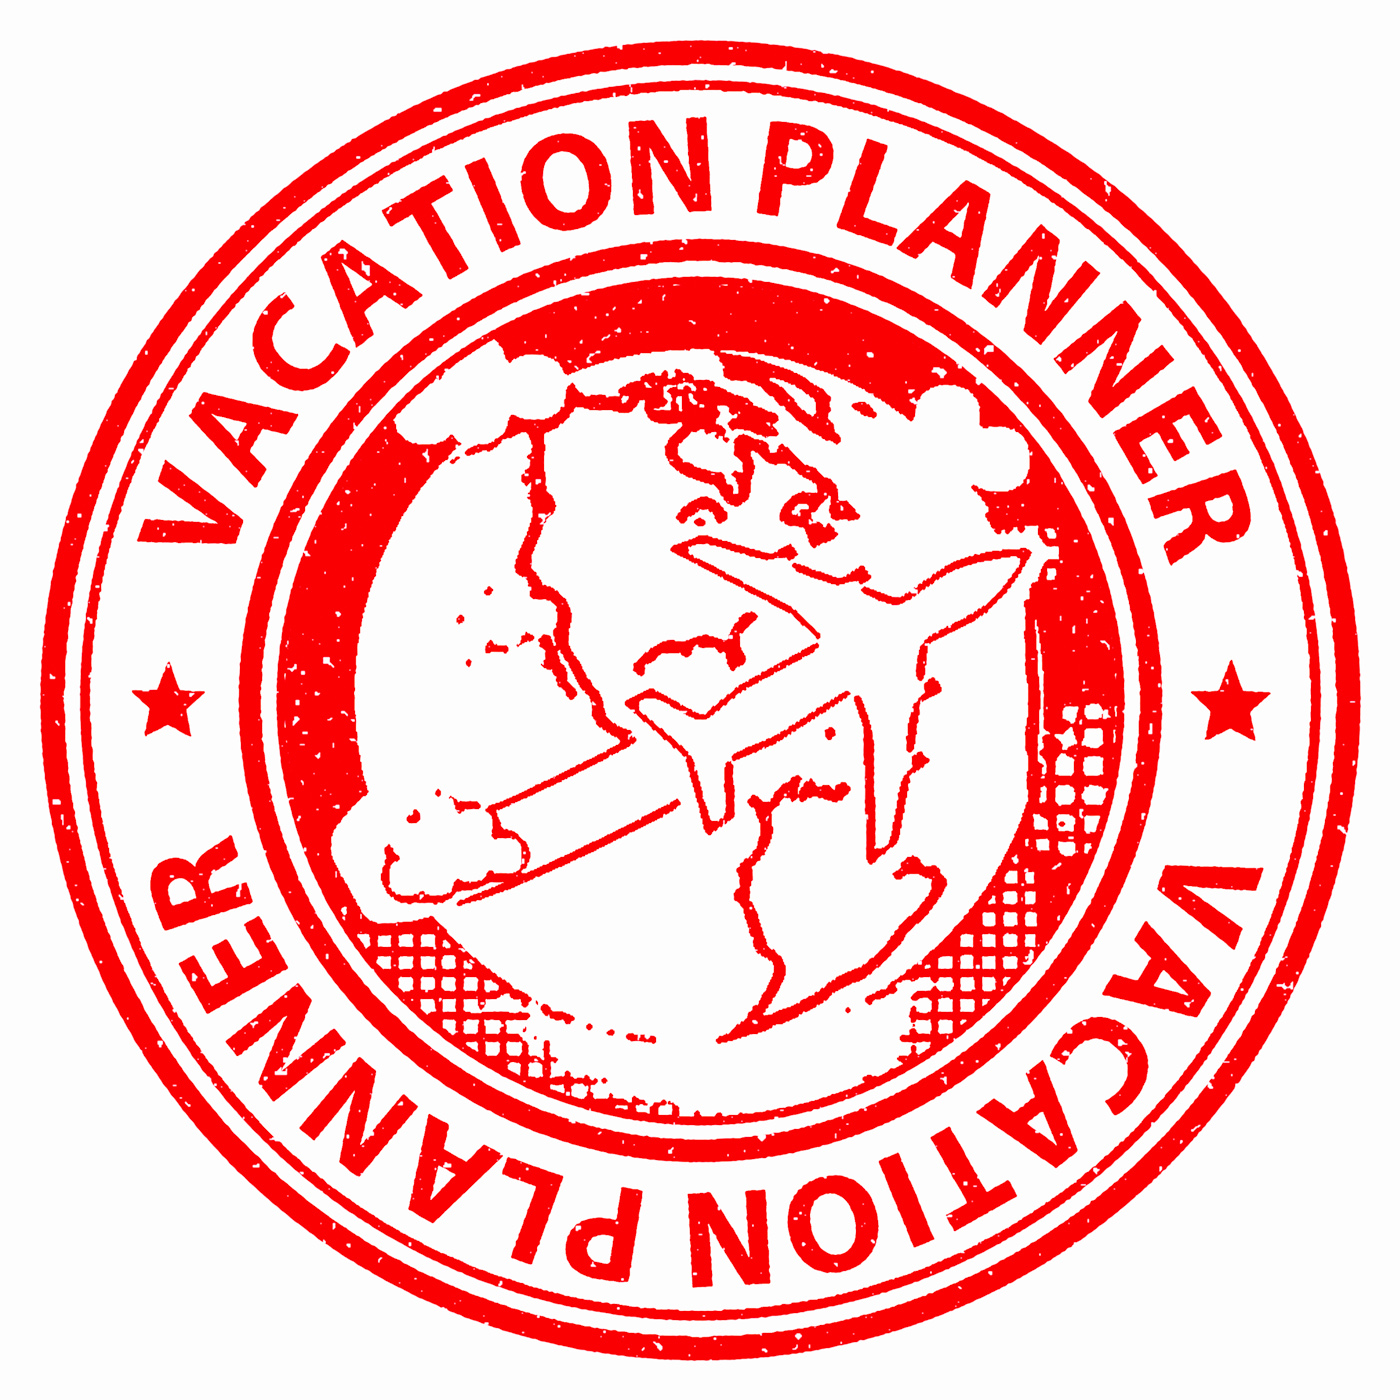 Vacation Planner Shows Vacational Organizing And Diary, Book, Plan, Vacationing, Vacational, HQ Photo